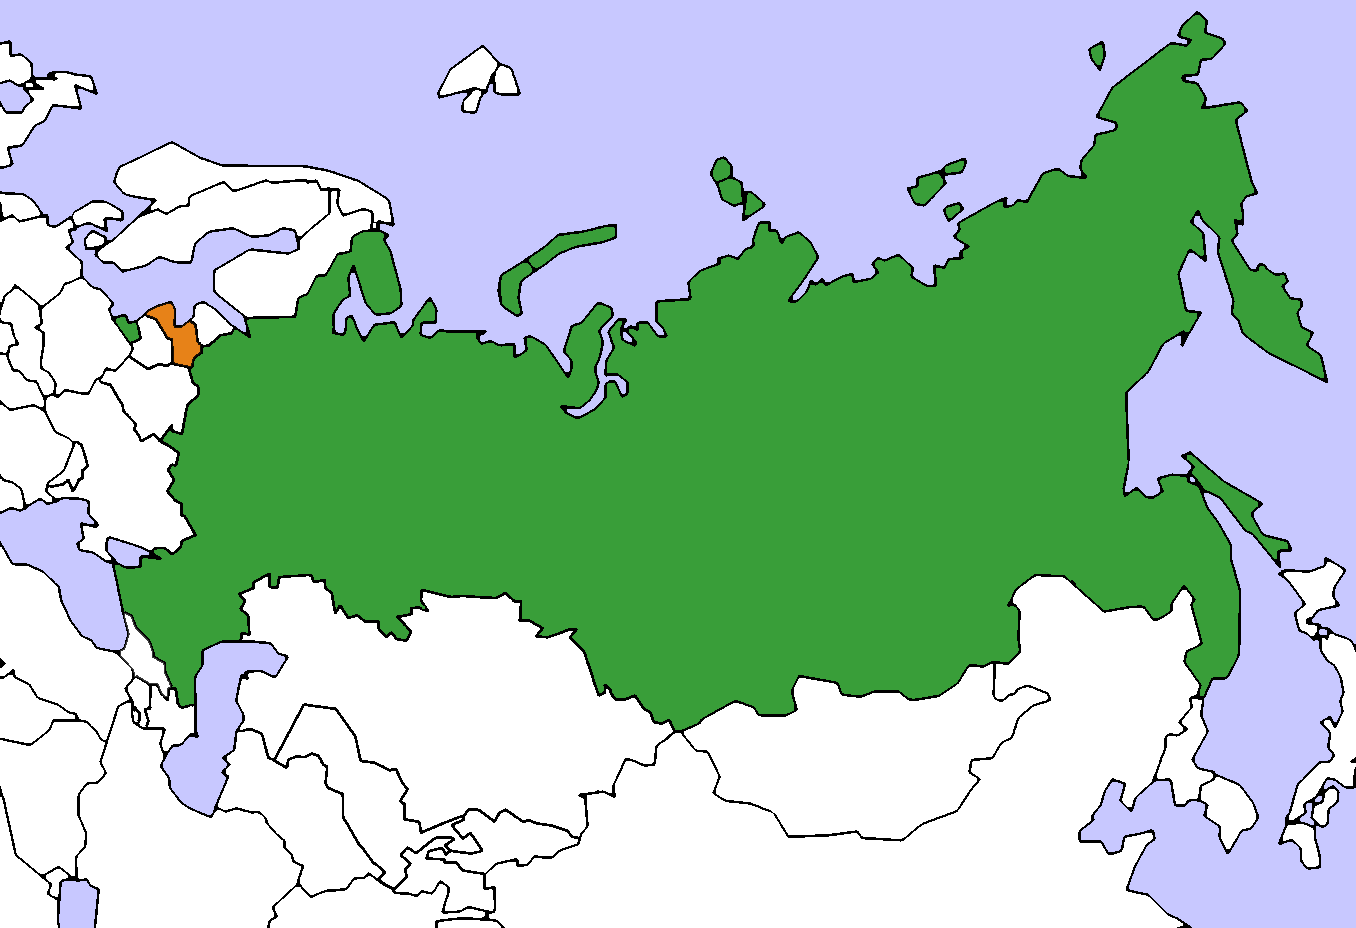 https://upload.wikimedia.org/wikipedia/ru/3/36/Russia_Latvia_Locator.png